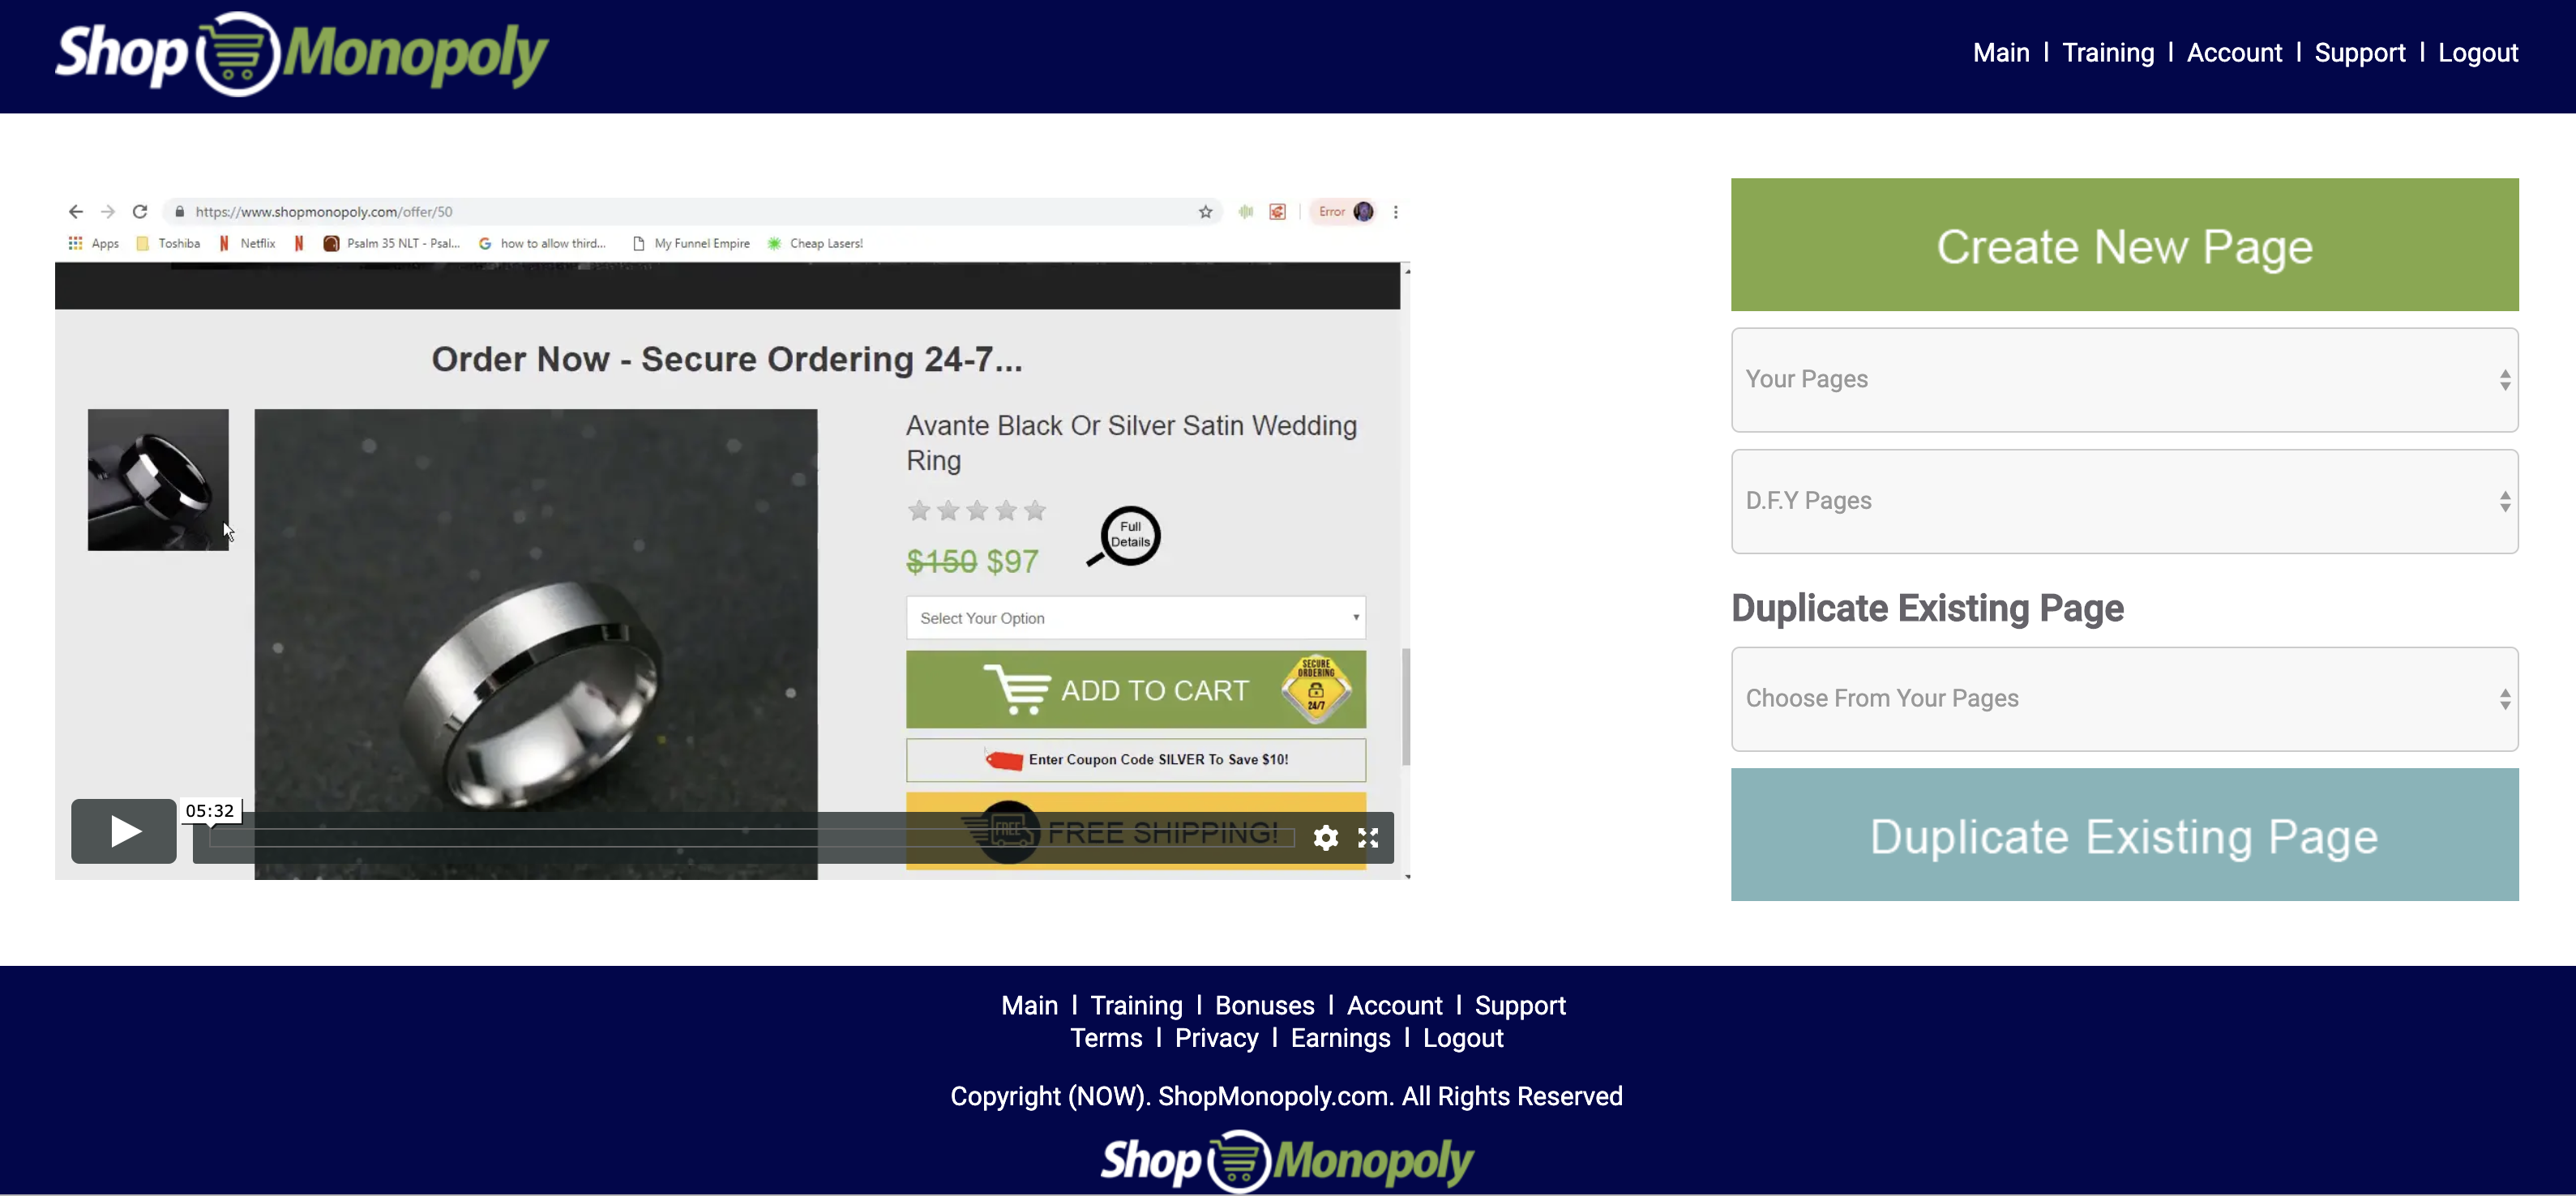 5 star ALL-IN-ONE online income platform | SHOPMONOPOLY 2